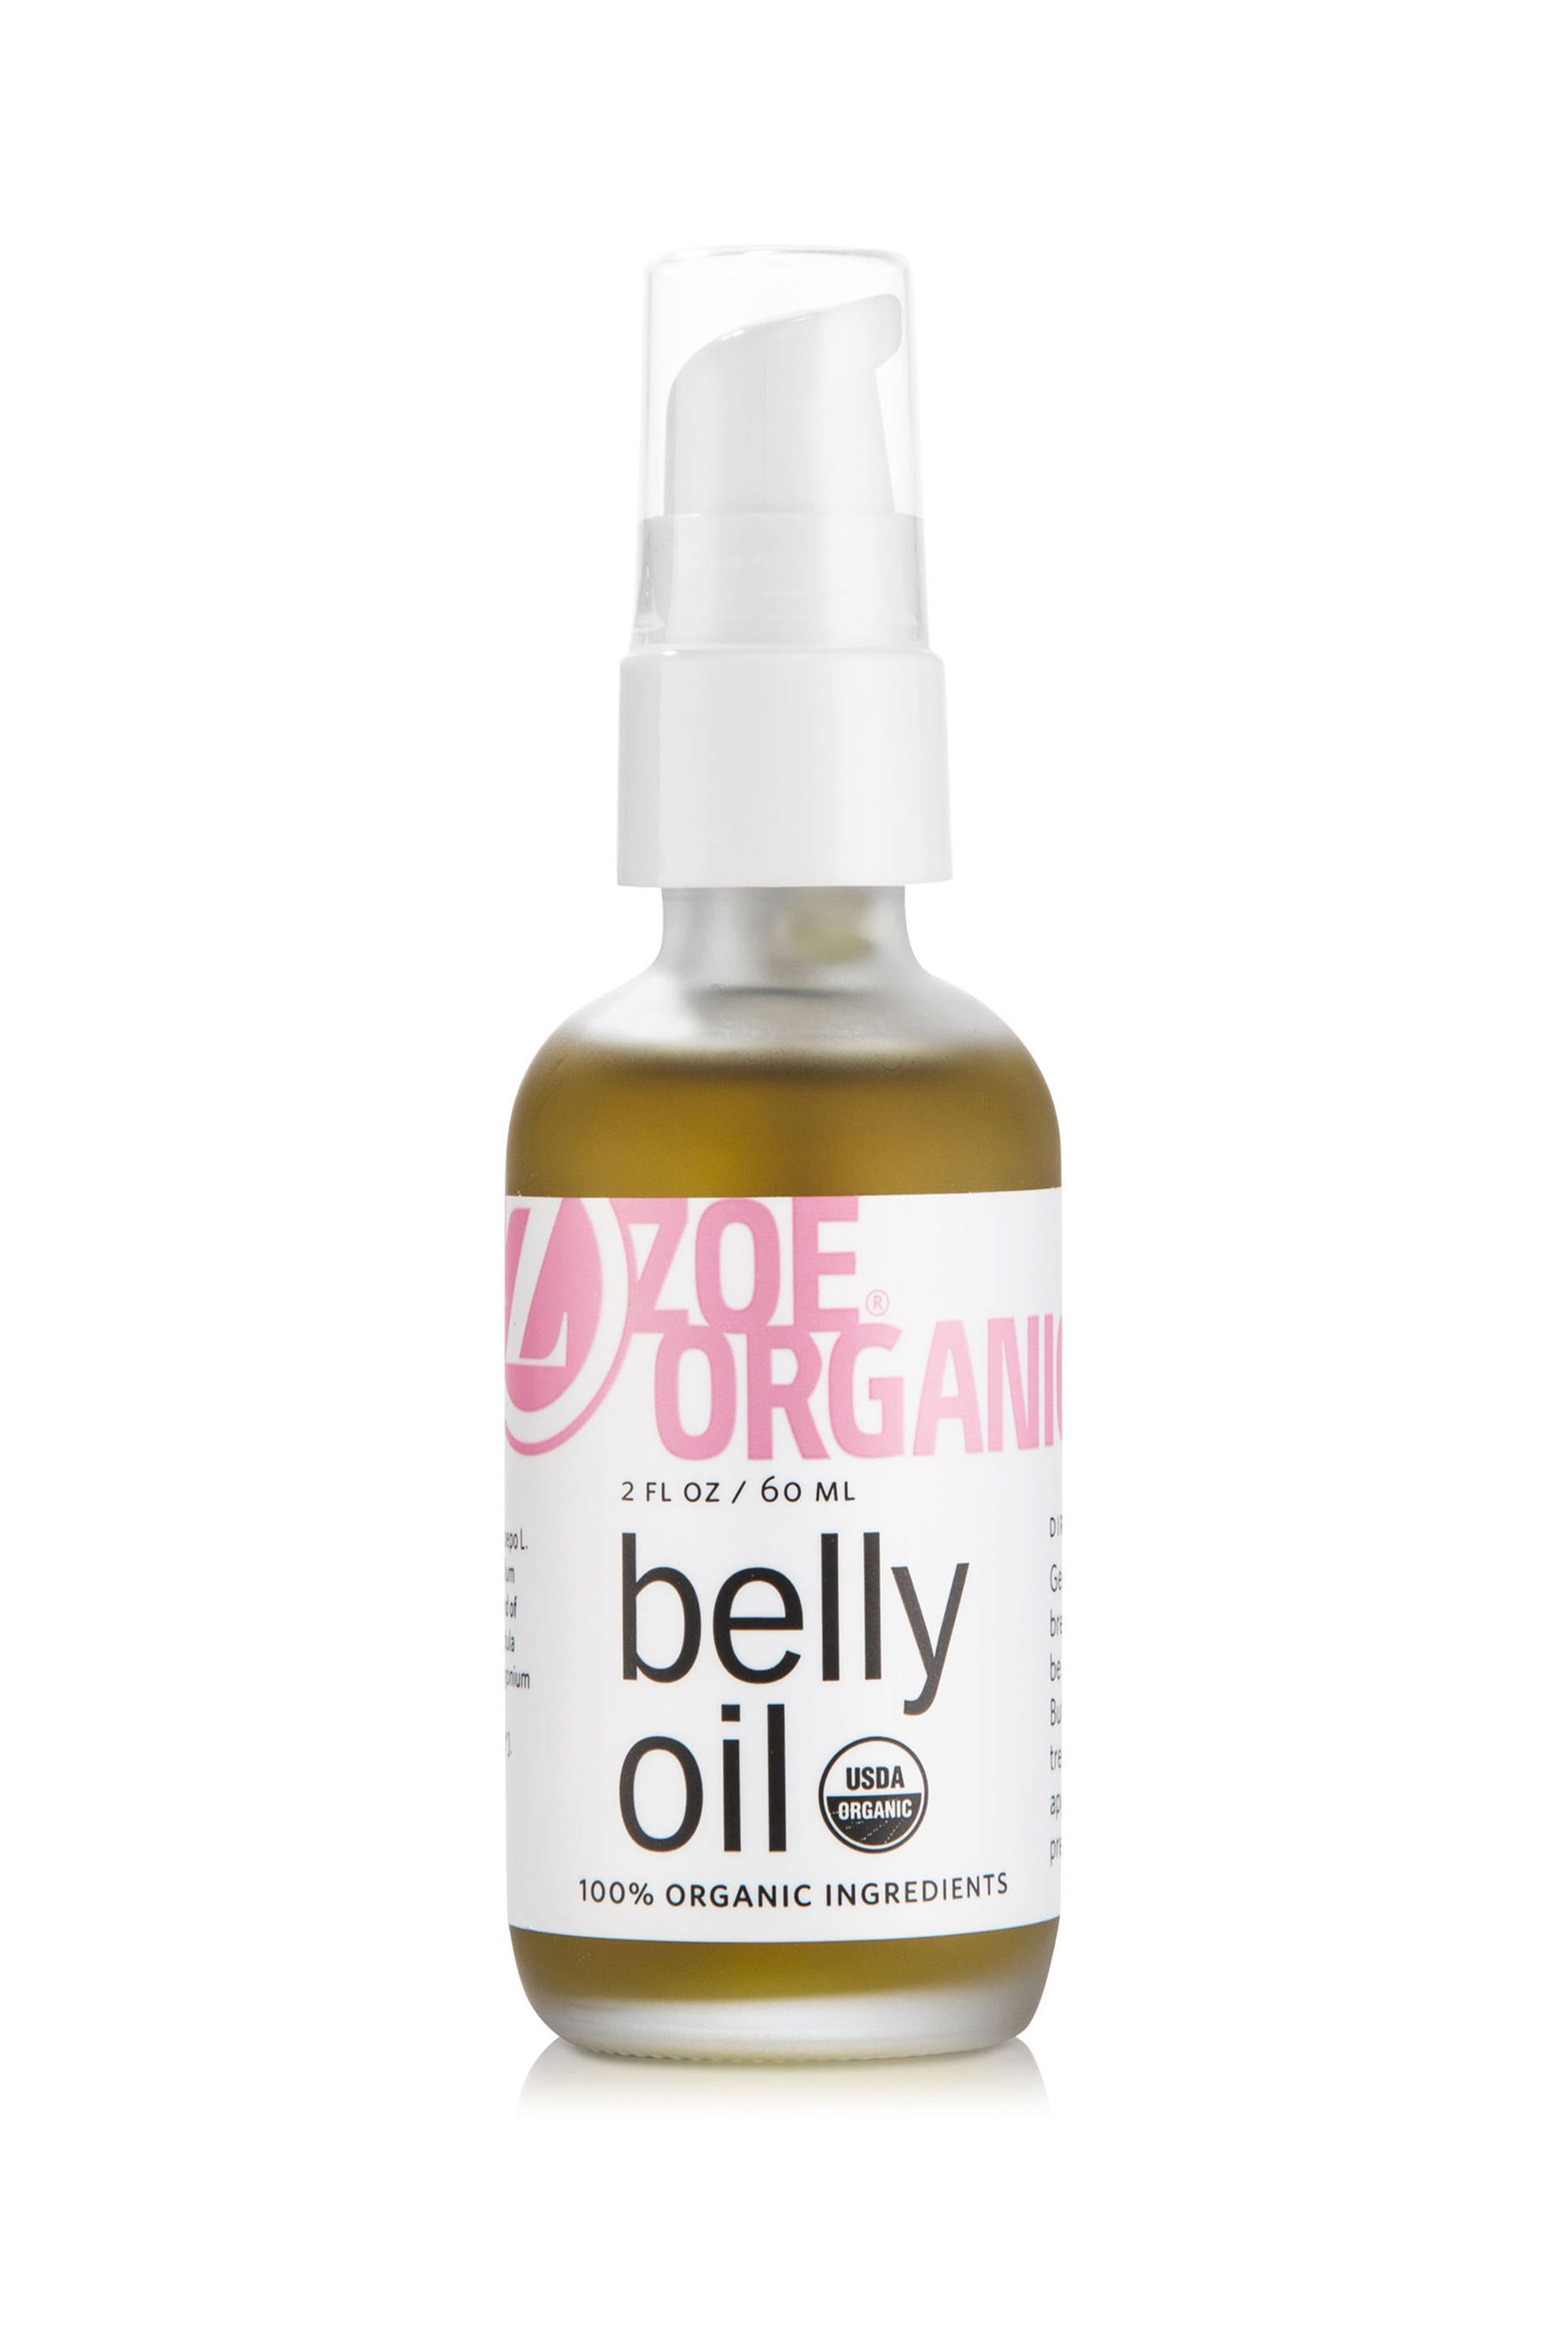 Belly Oil Zoe Organics nordstrom.com $19.95 SHOP NOW Taking care of a baby bump is no joke. Make sure the mother is set with this belly oil, made of natural, nutrient-rich ingredients like Rosehip oil.